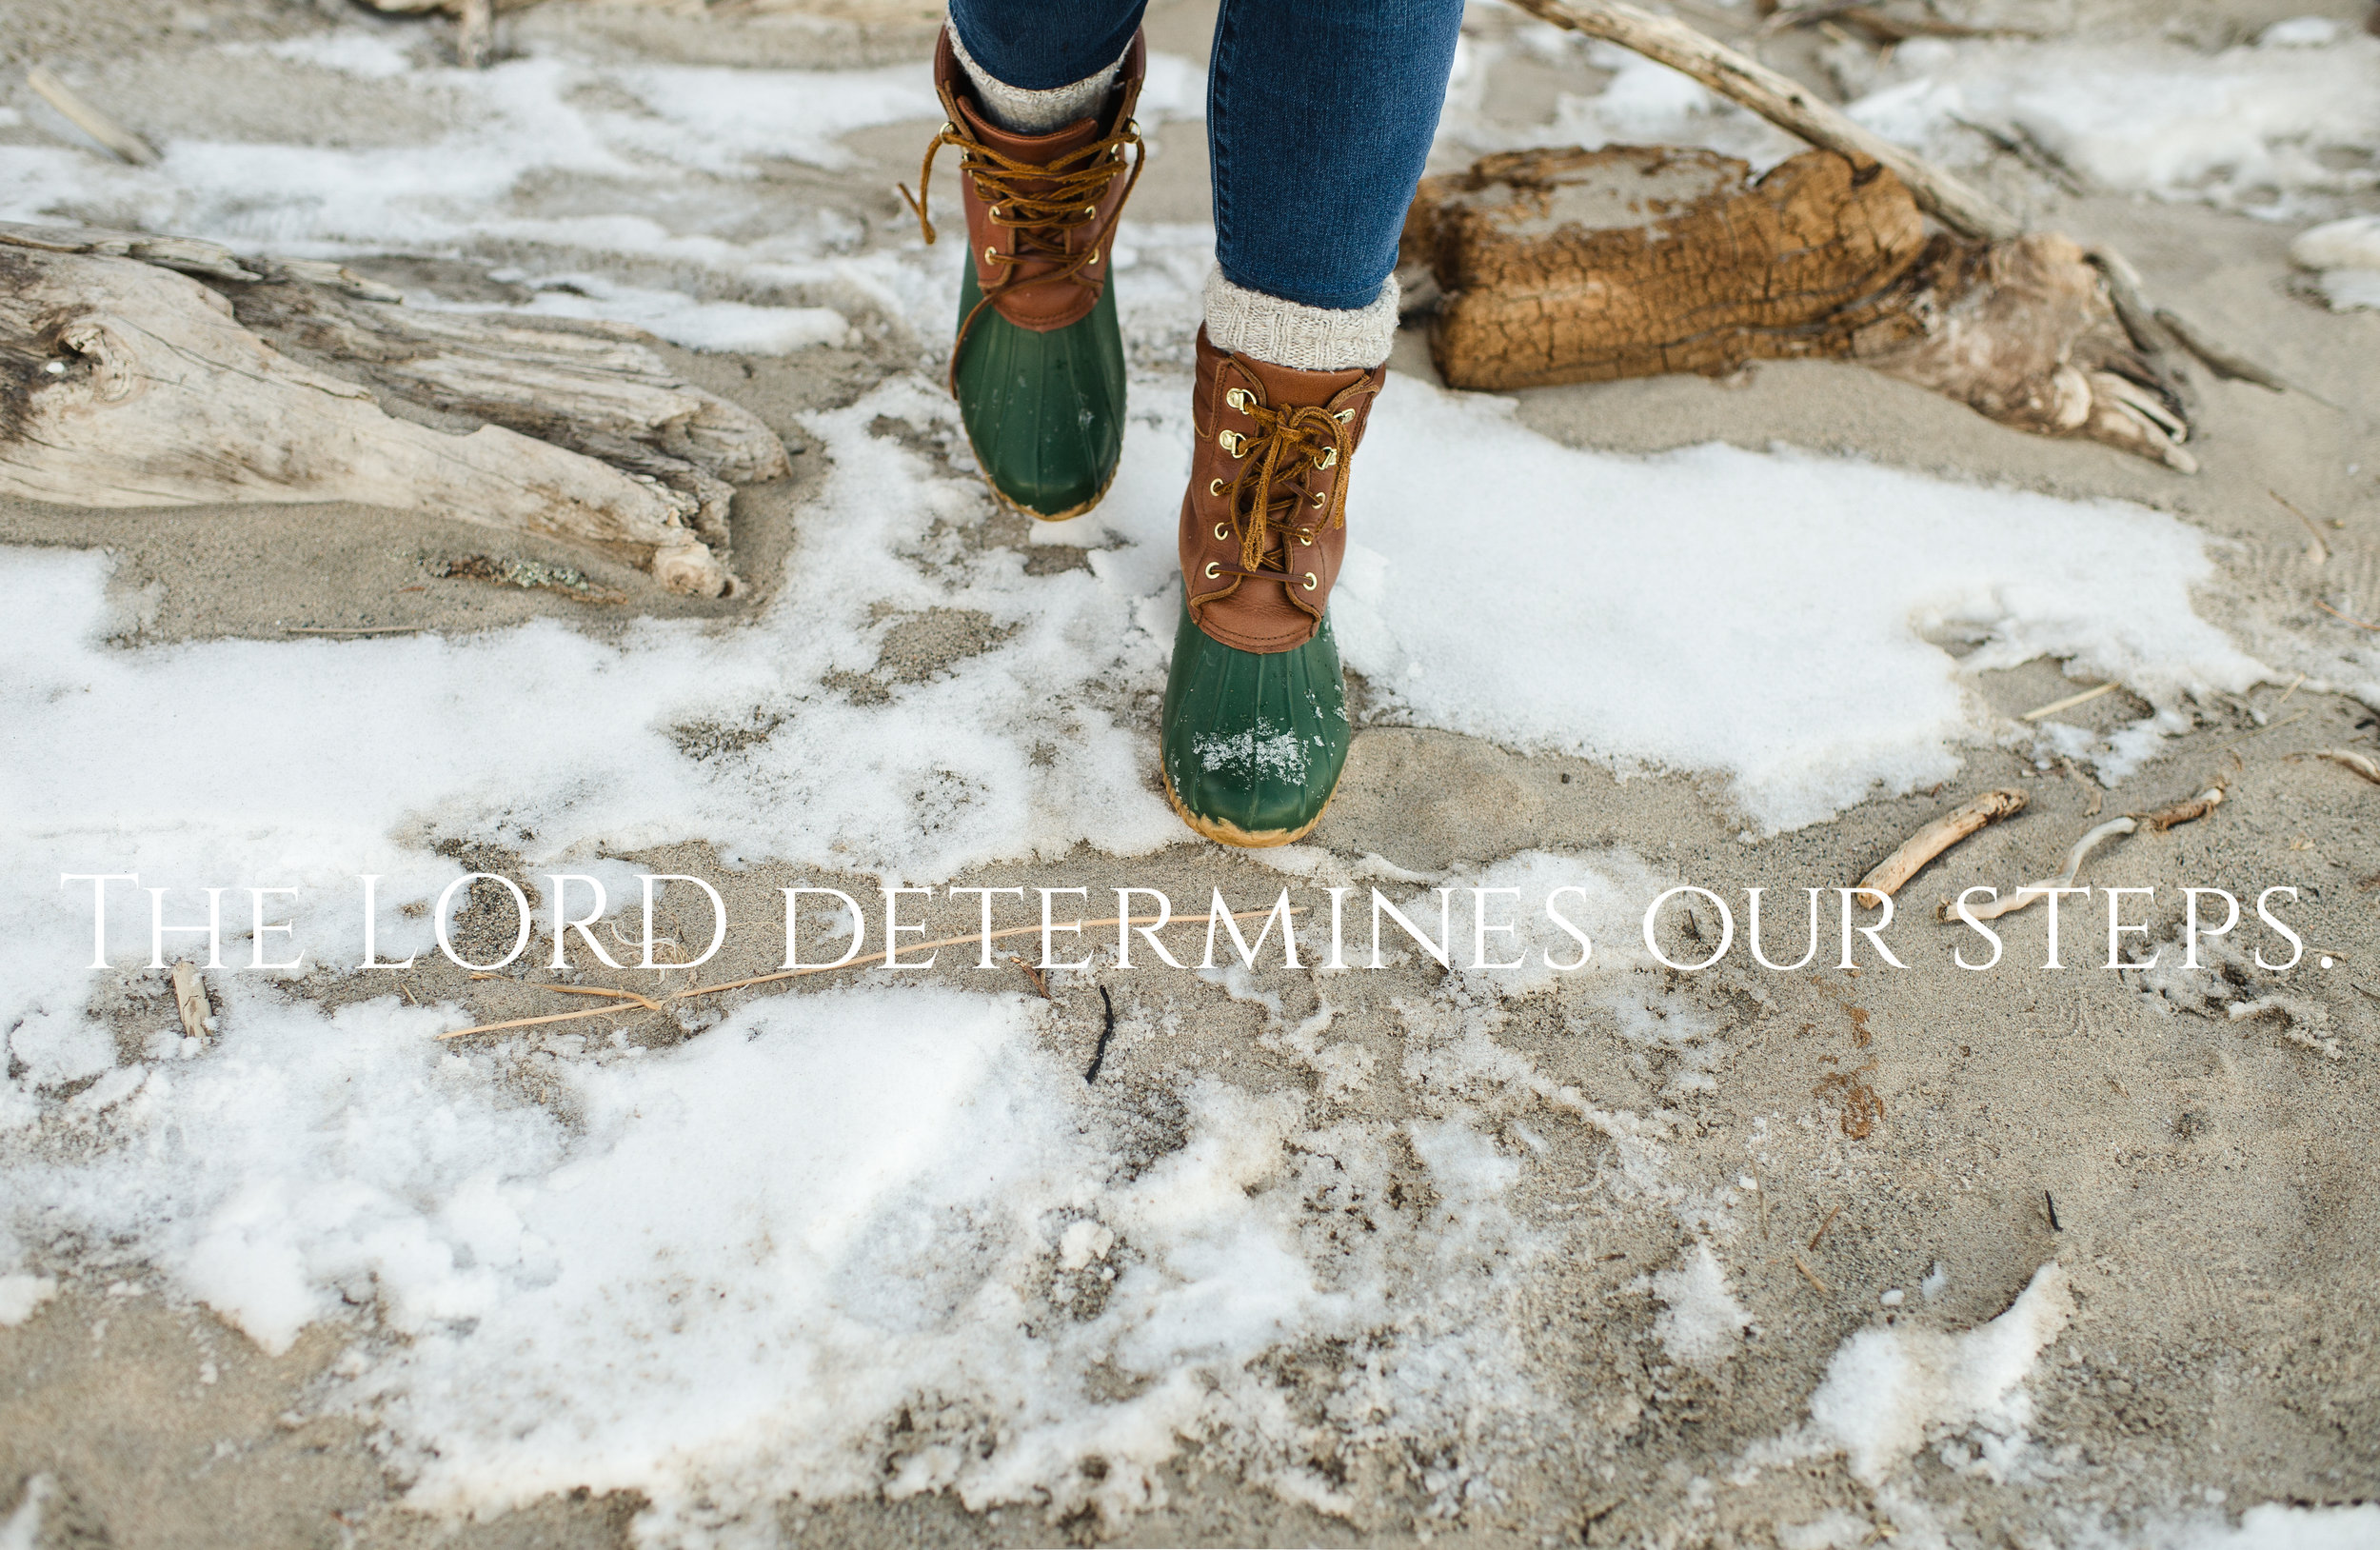 In his heart a man plans his course, but the LORD determines his steps. Proverbs 16:9